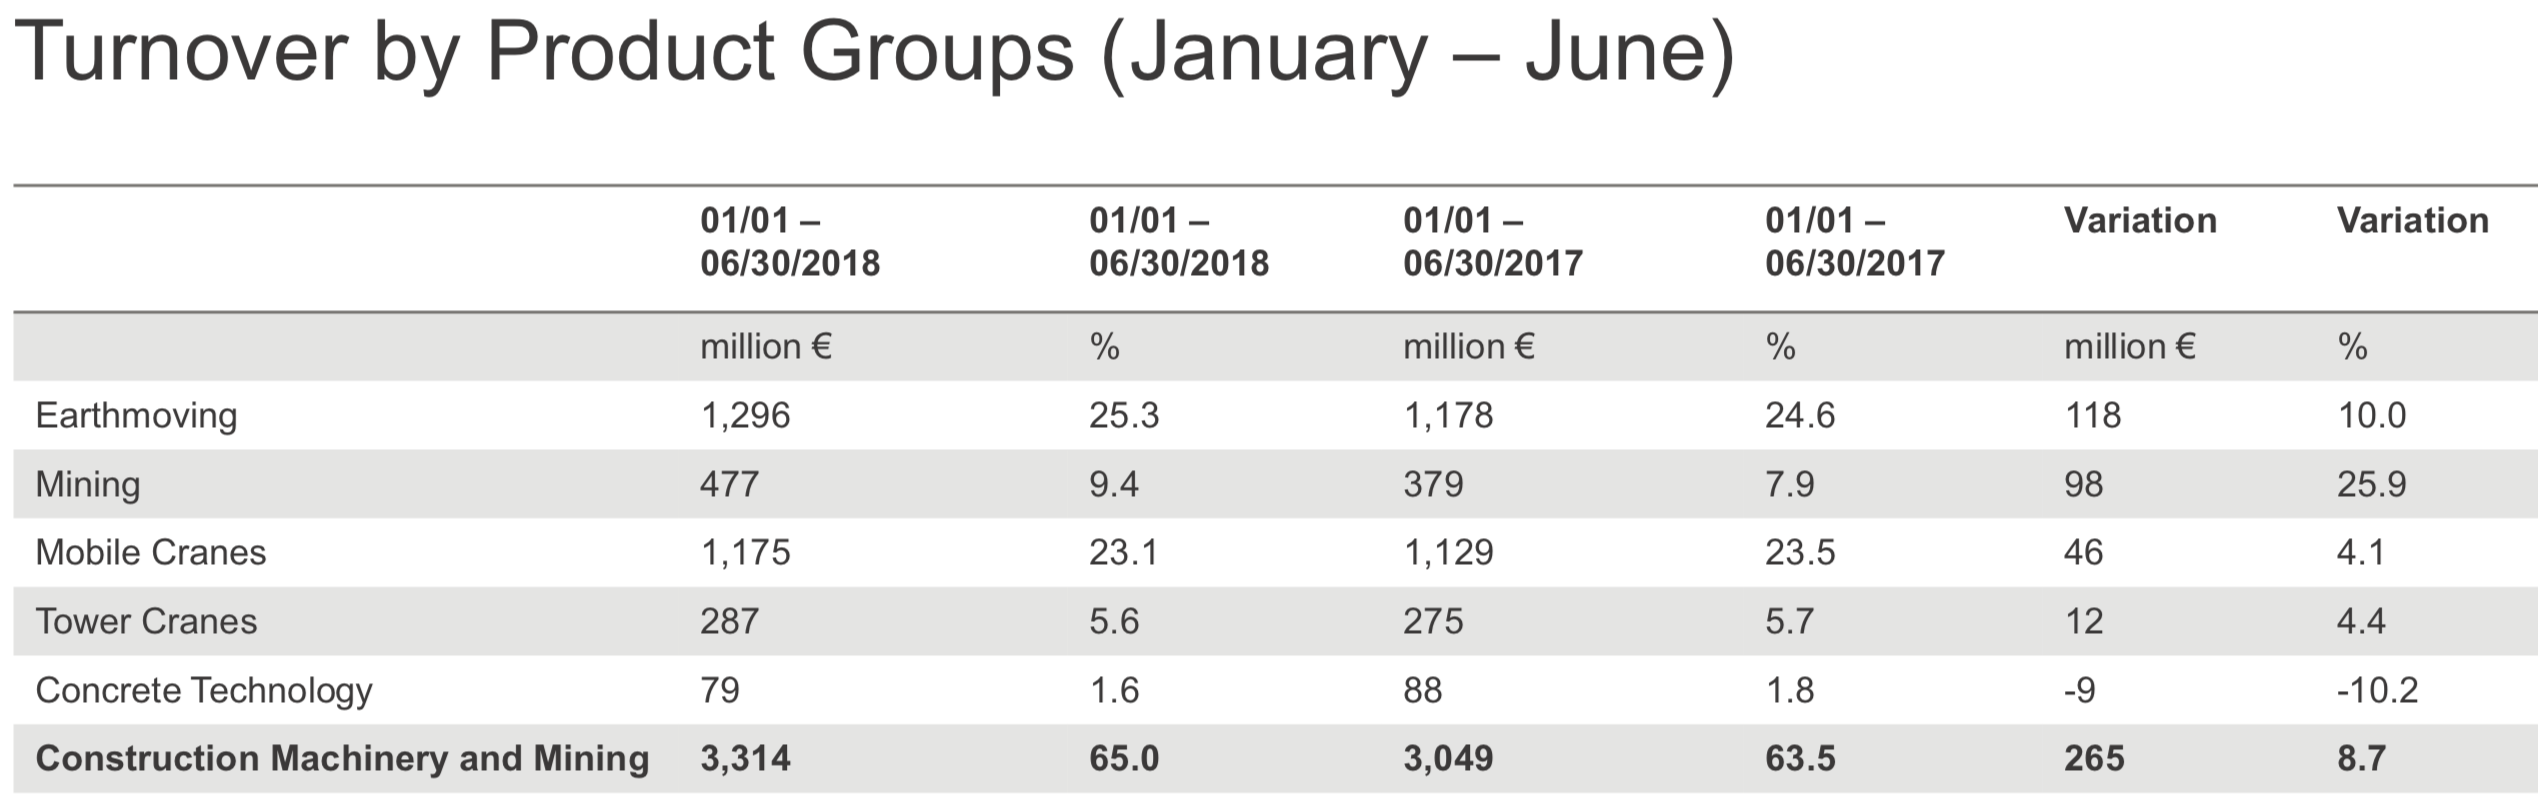 Turnover by product groups chart for January - June